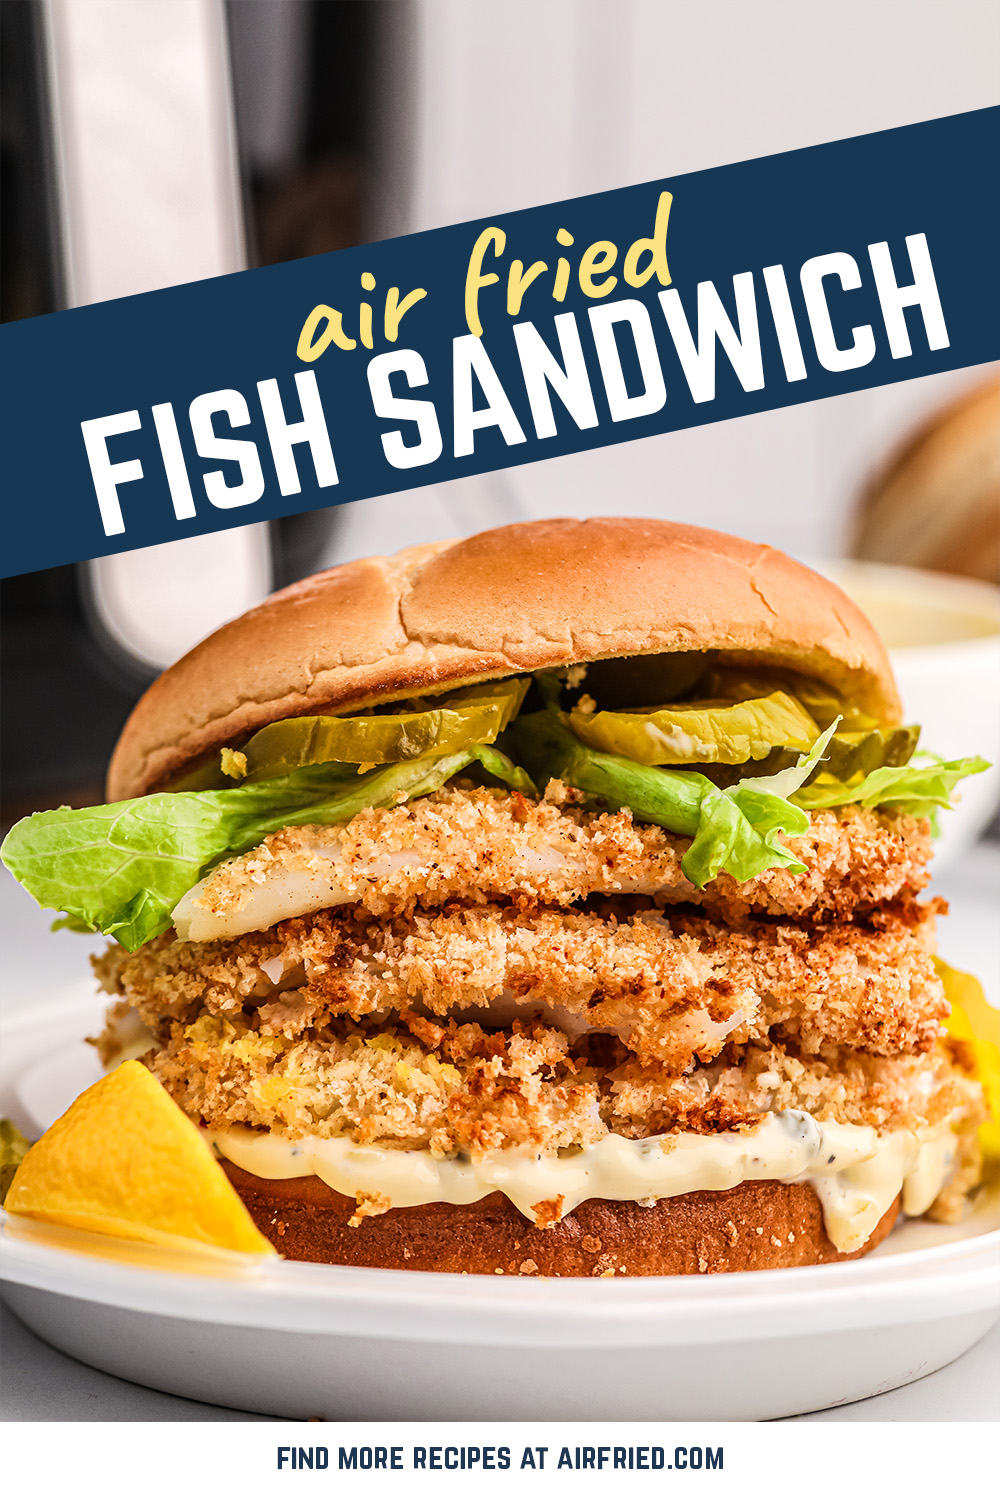 This amazing fish sandwich has a homemade breading, is cooked in the fryer to perfection, and has a super easy cleanup!